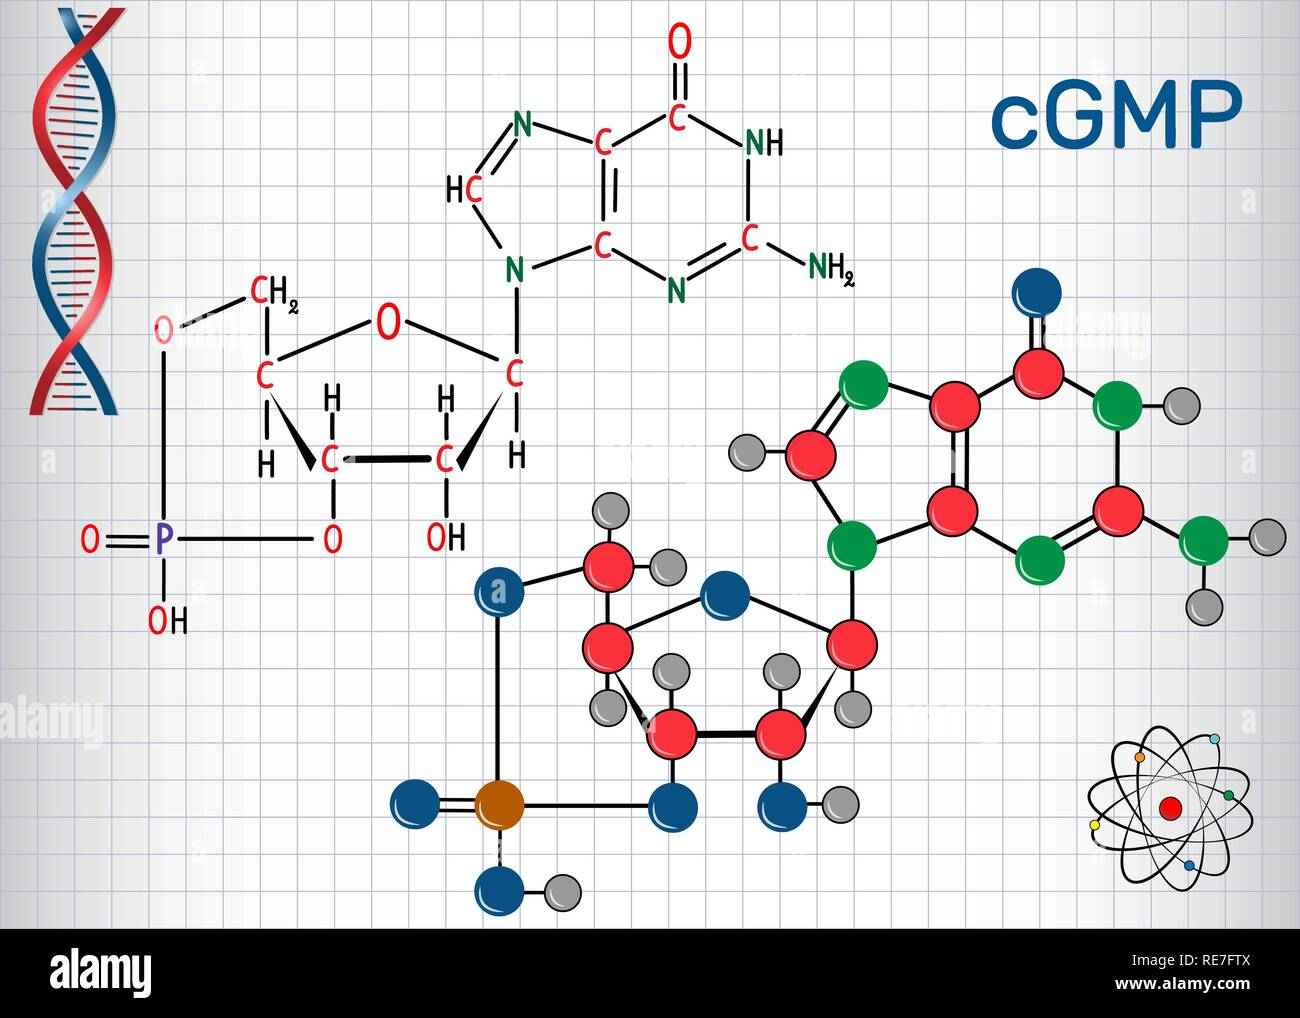 Cyclic guanosine monophosphate (cGMP)  molecule. Sheet of paper in a cage. Structural chemical formula and molecule model. Vector illustration - Stock Image